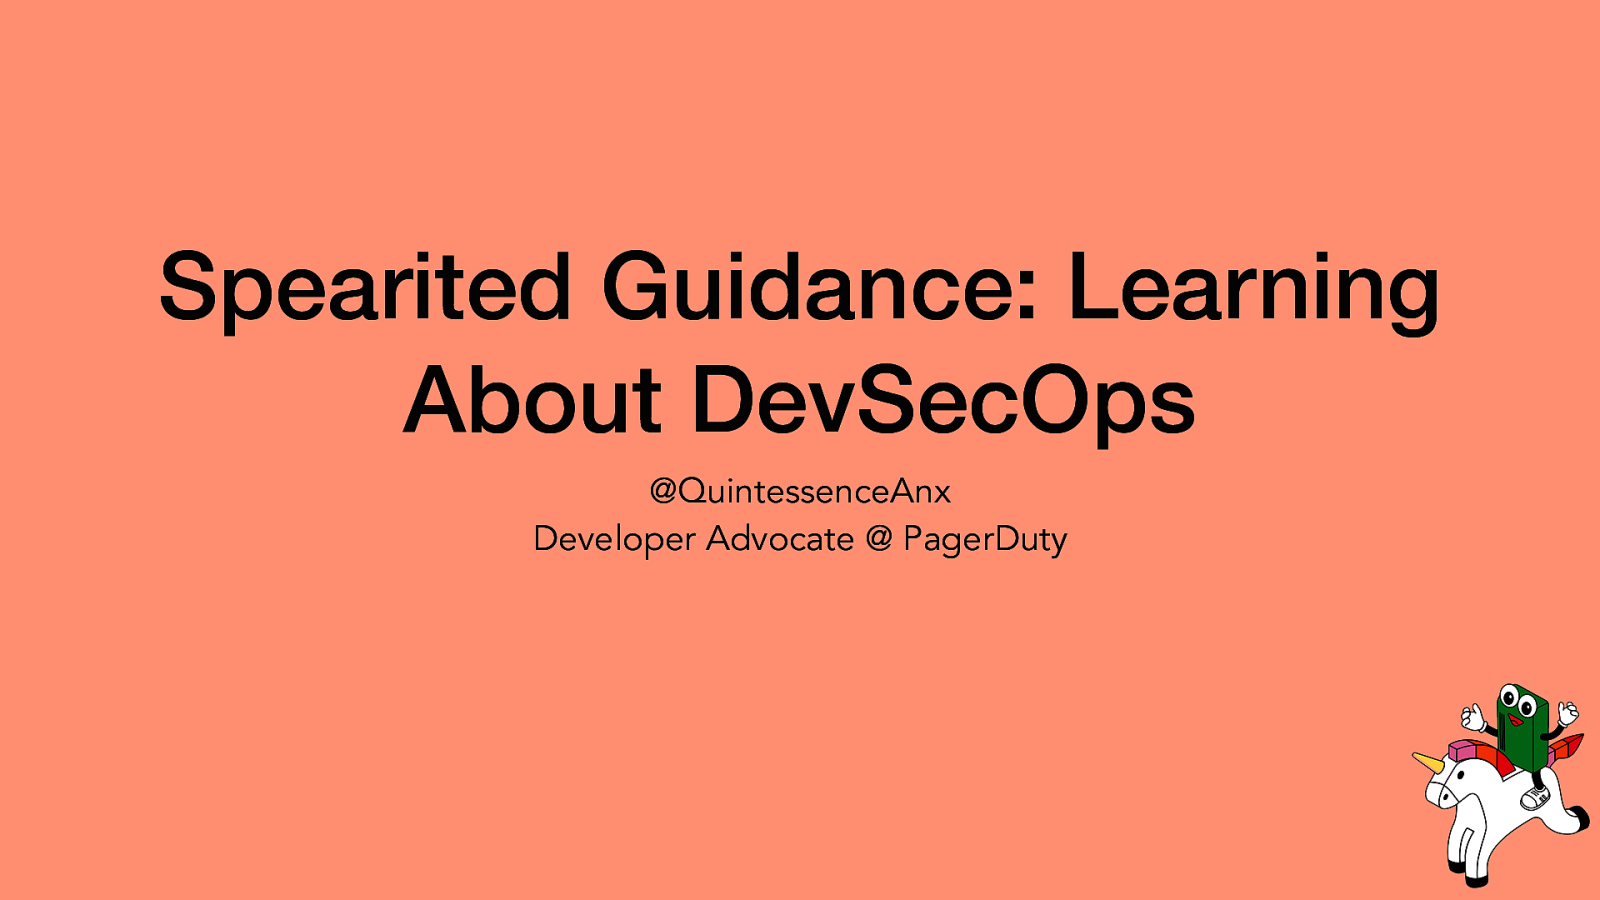 Spearited Guidance: Learning About DevSecOps